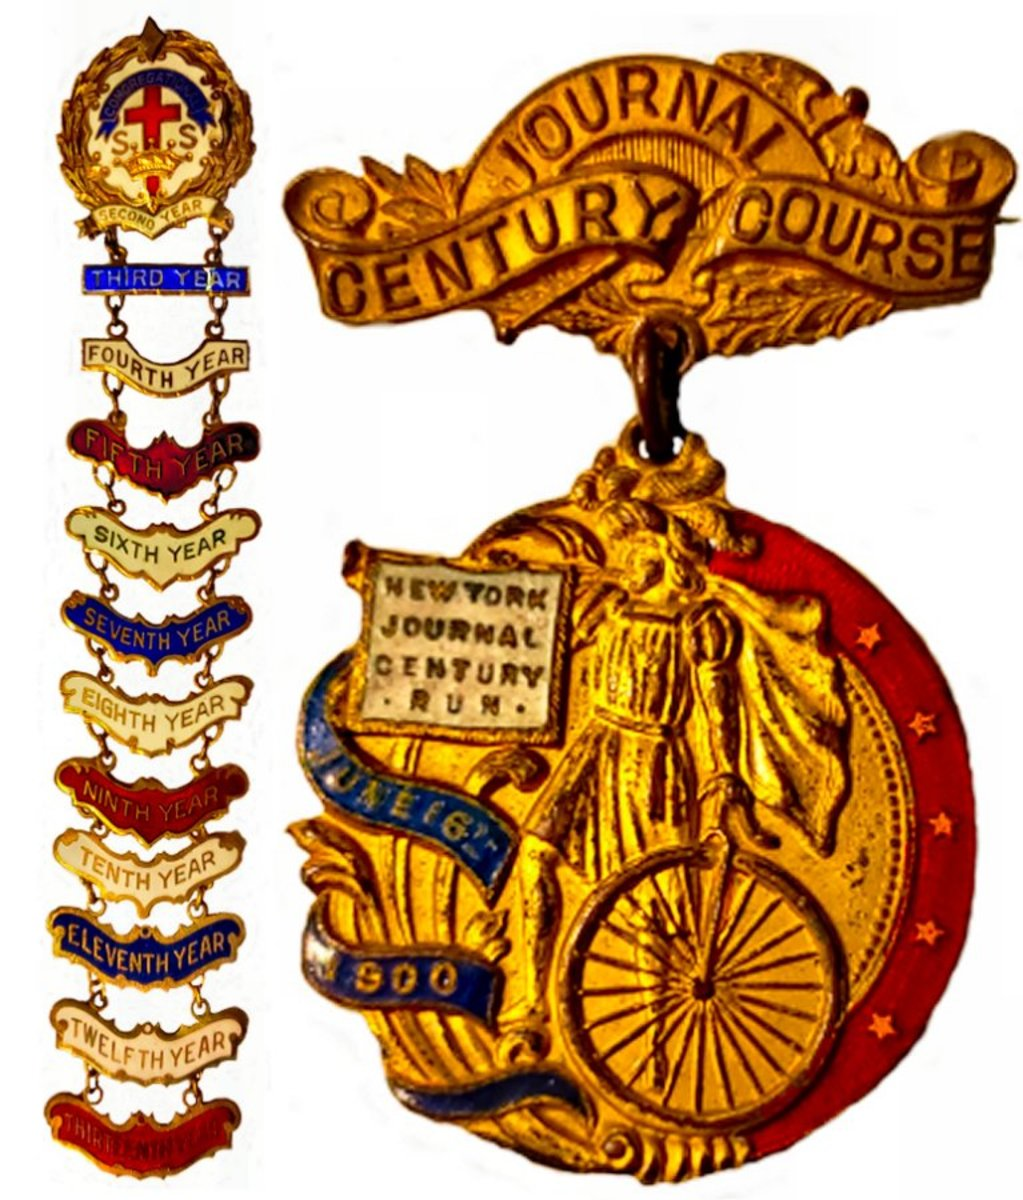 """This multicolored, religious, years-of-service enamel pin celebrated thirteen years of service with a new bar being added for each year of service. The """"Century Journal Course"""" cycling medal from June 16th 1900 is decorated with blue and red enamel that has remained almost pristine for 120 years."""